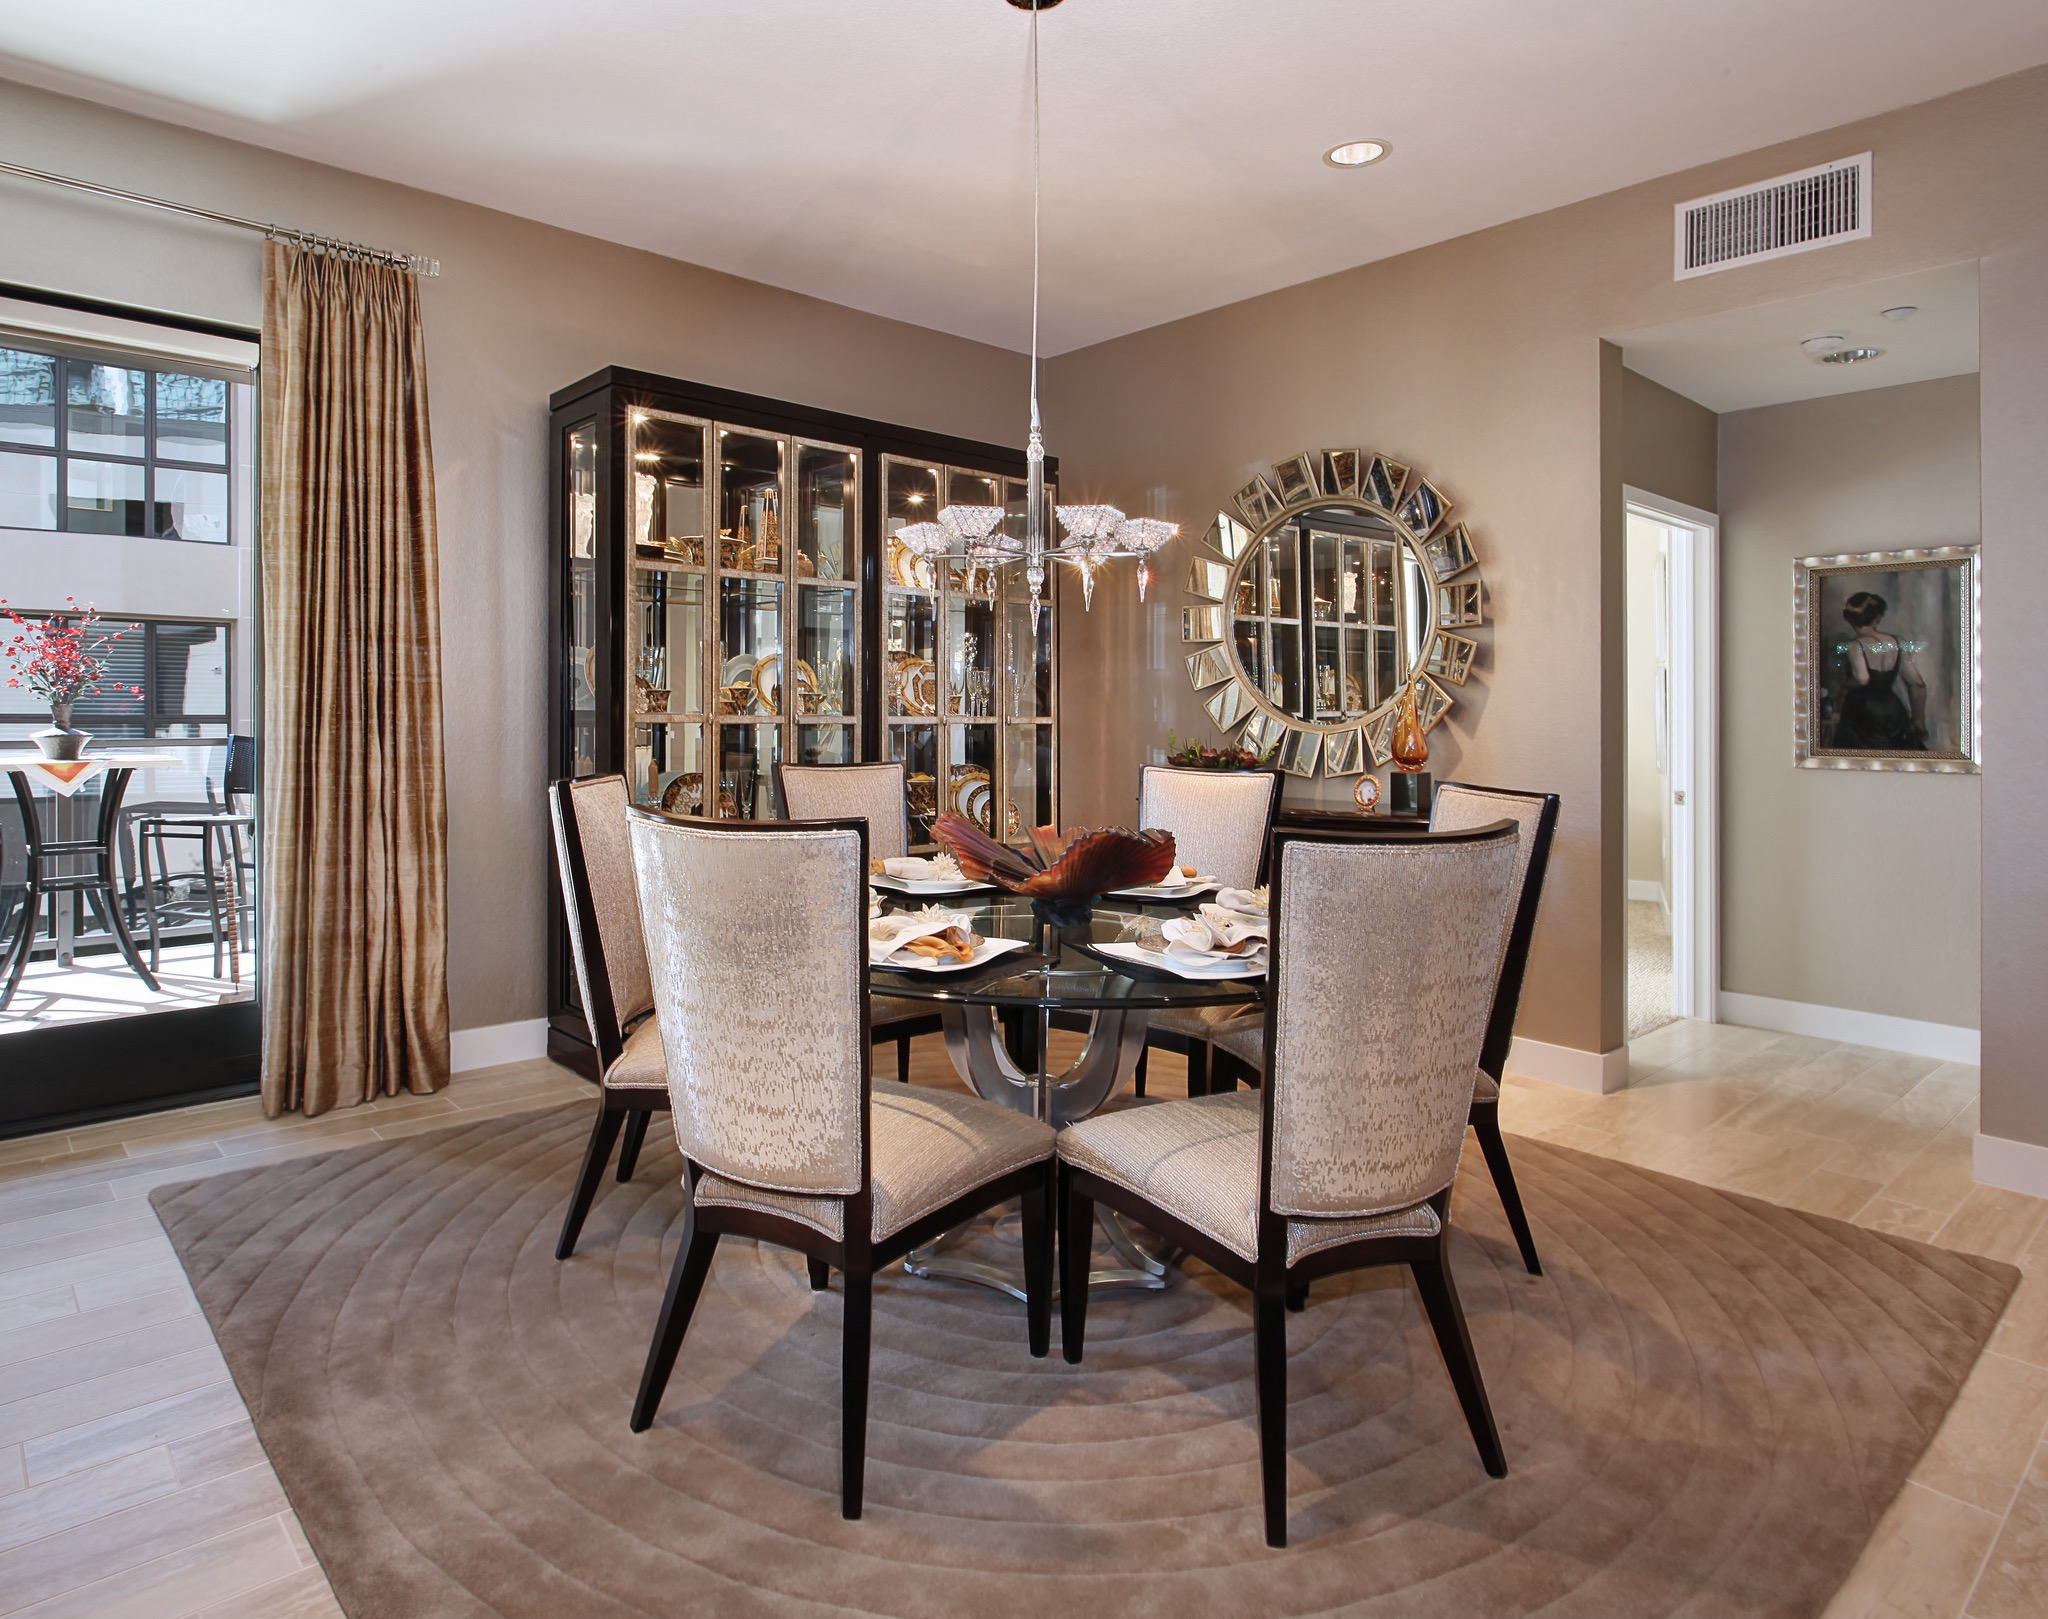 Glamorous Formal Dining Room In Modern Design (Image 18 of 25)